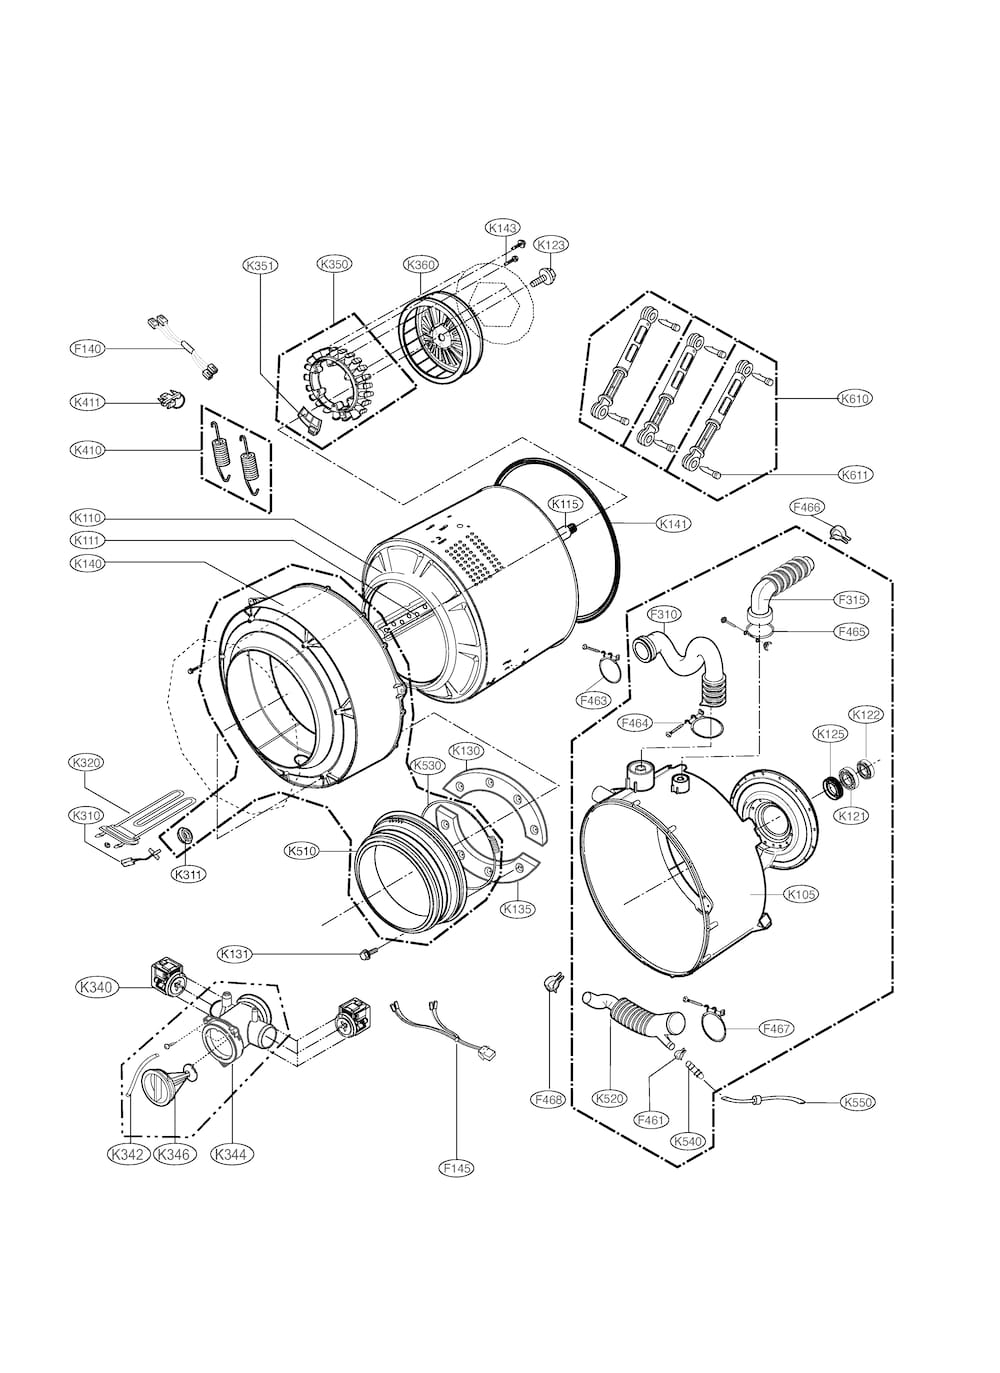 front load washer parts diagram lg image about wiring diagram